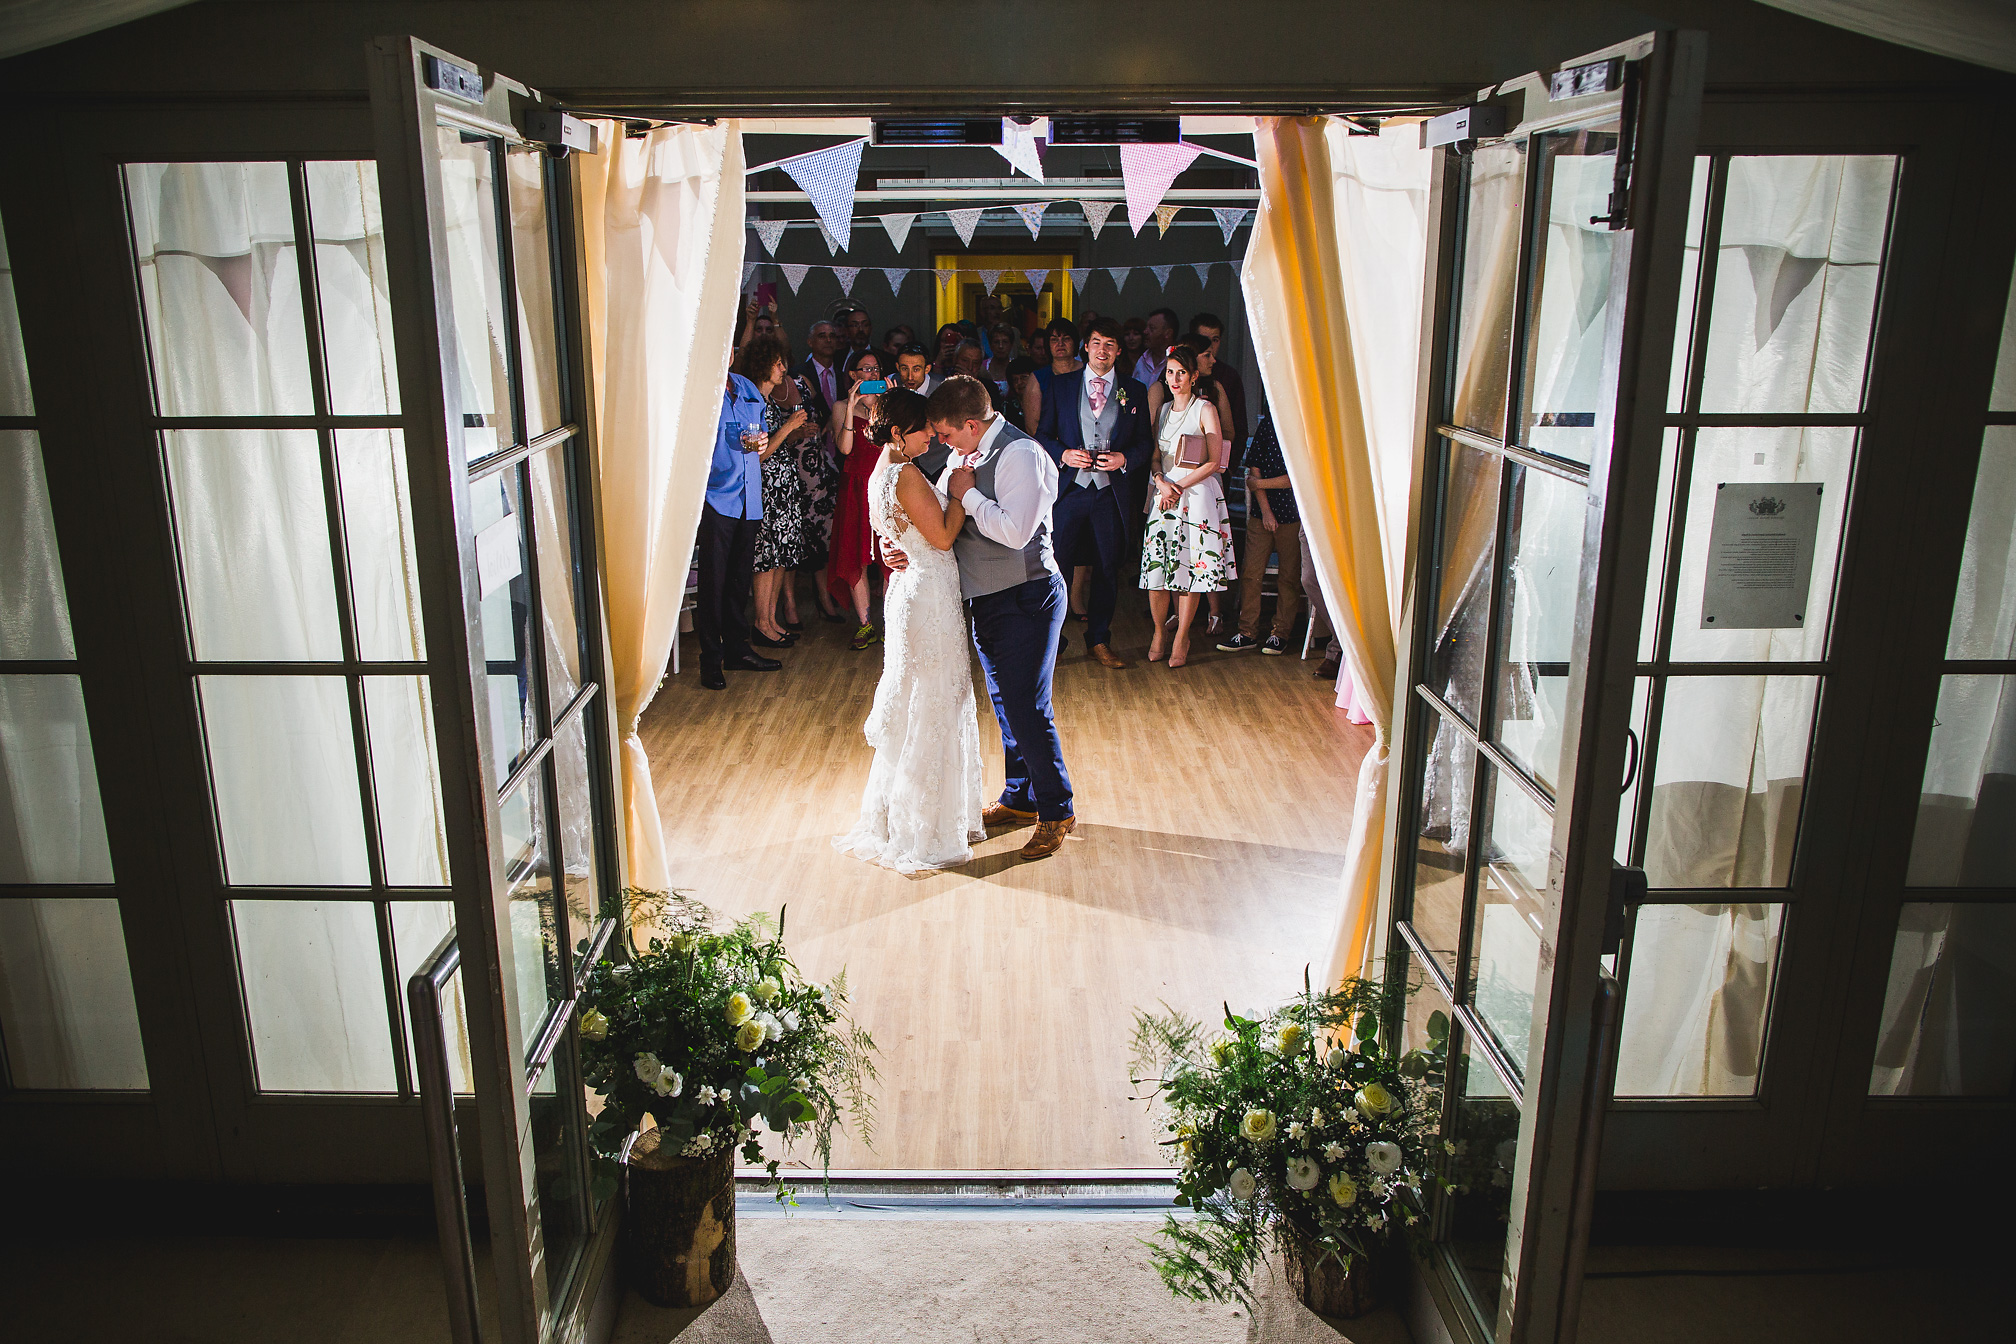 MyWed Editors Choice - The Romantic First Dance